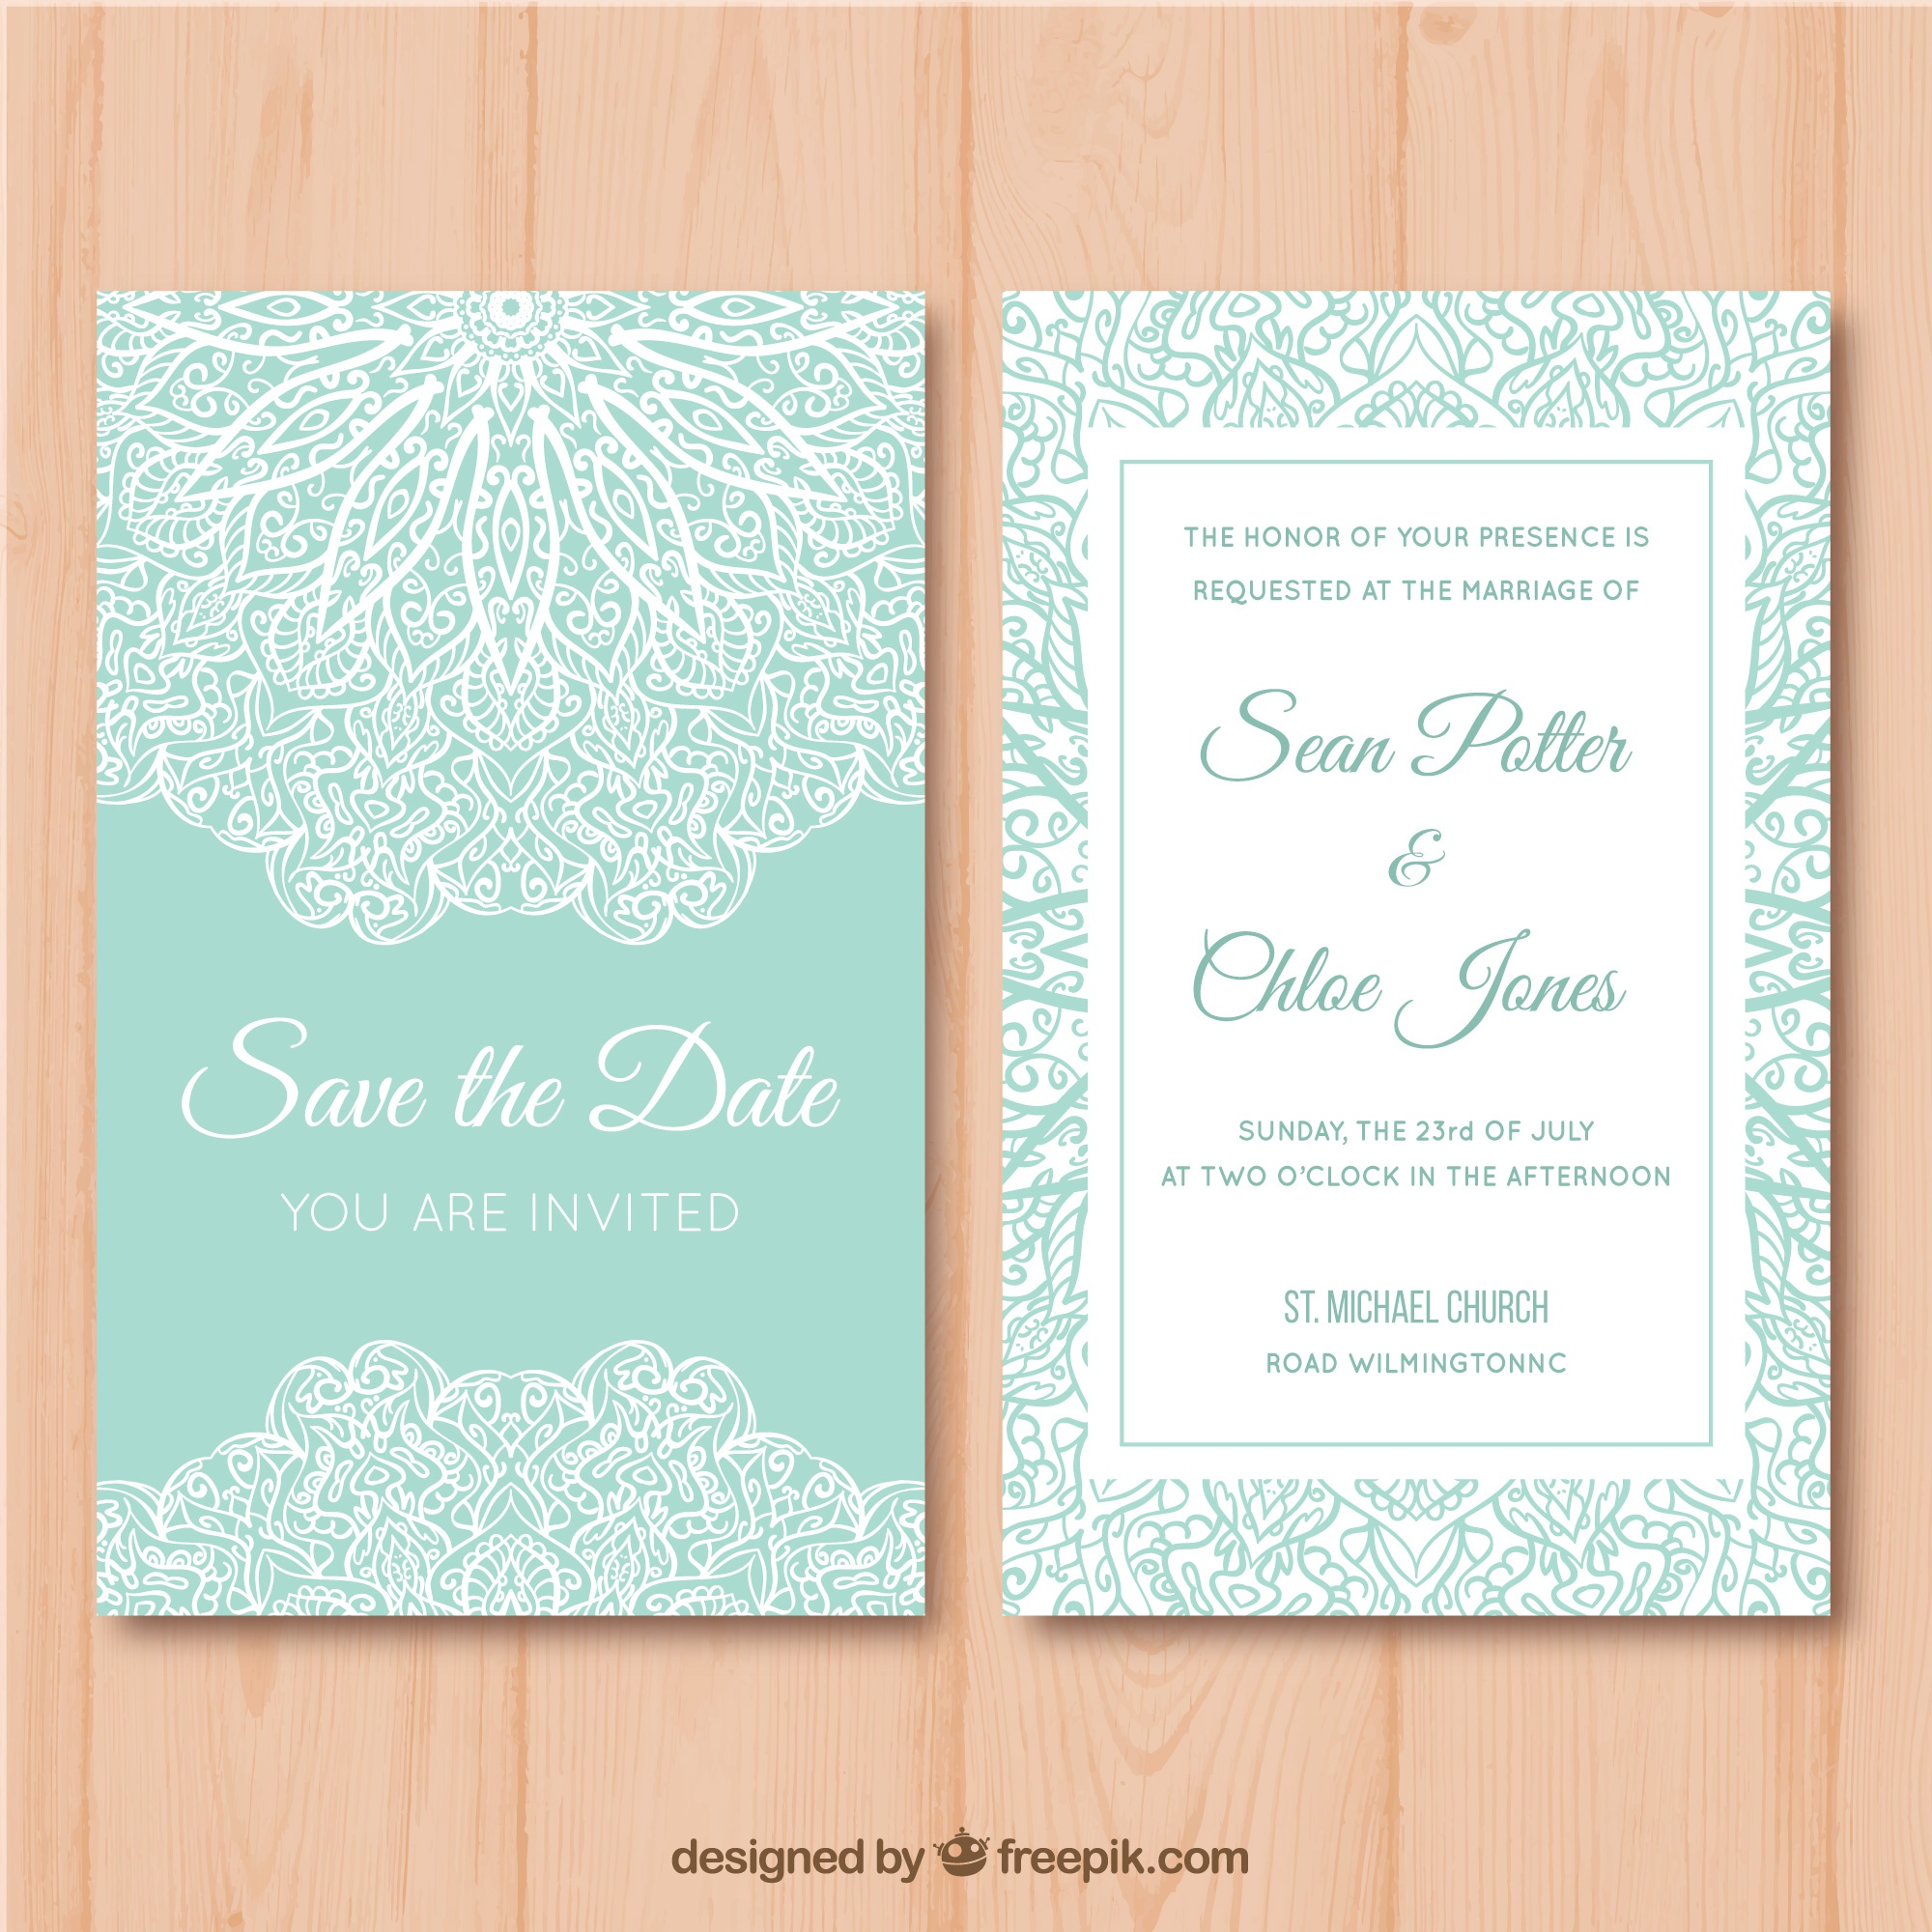 Green and white wedding card with mandala desig